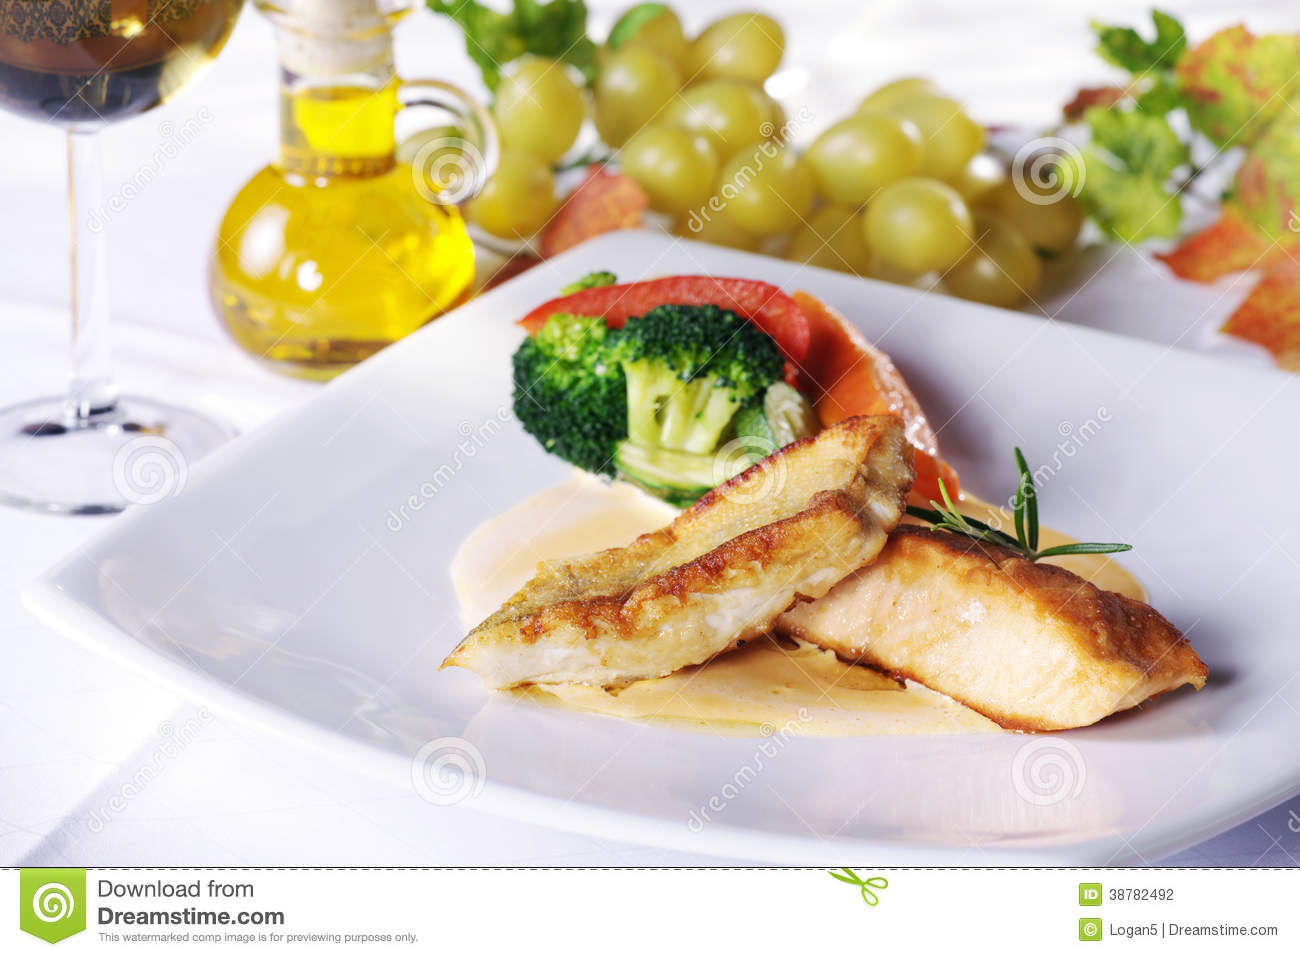 Garnish for chicken can be different 96